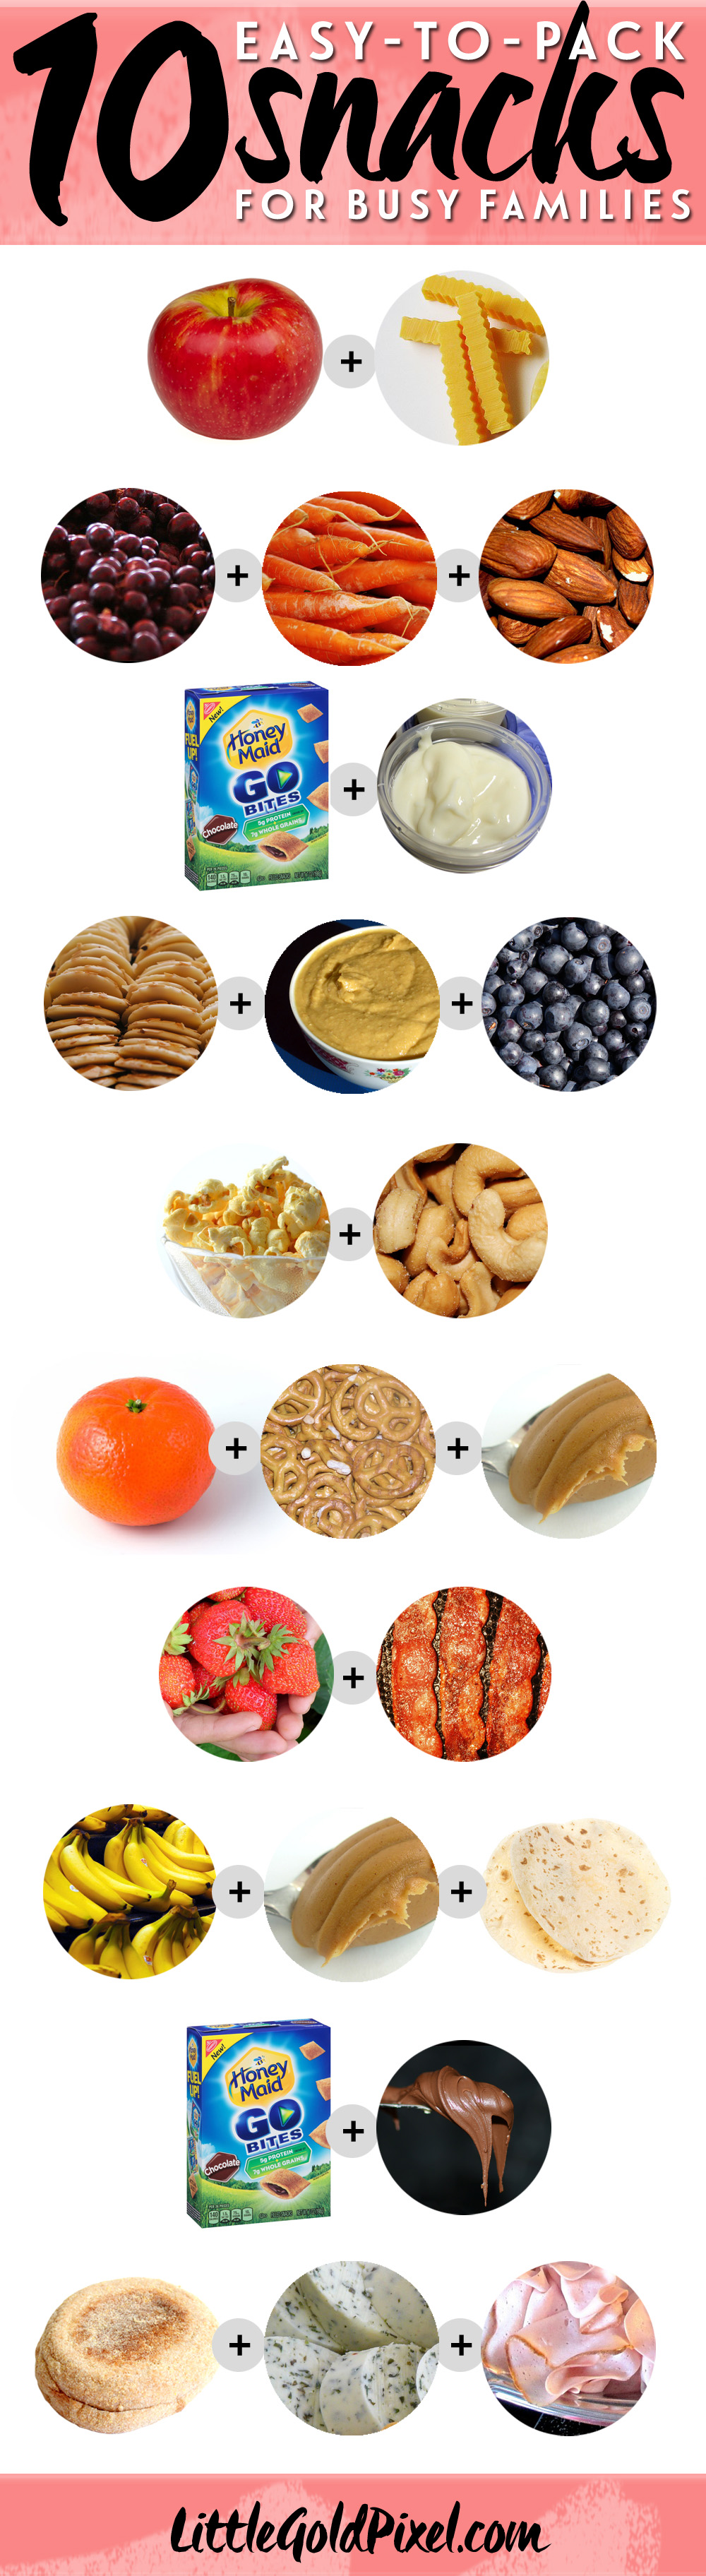 10 Easy Snacks to Pack for Busy Families •Little Gold Pixel